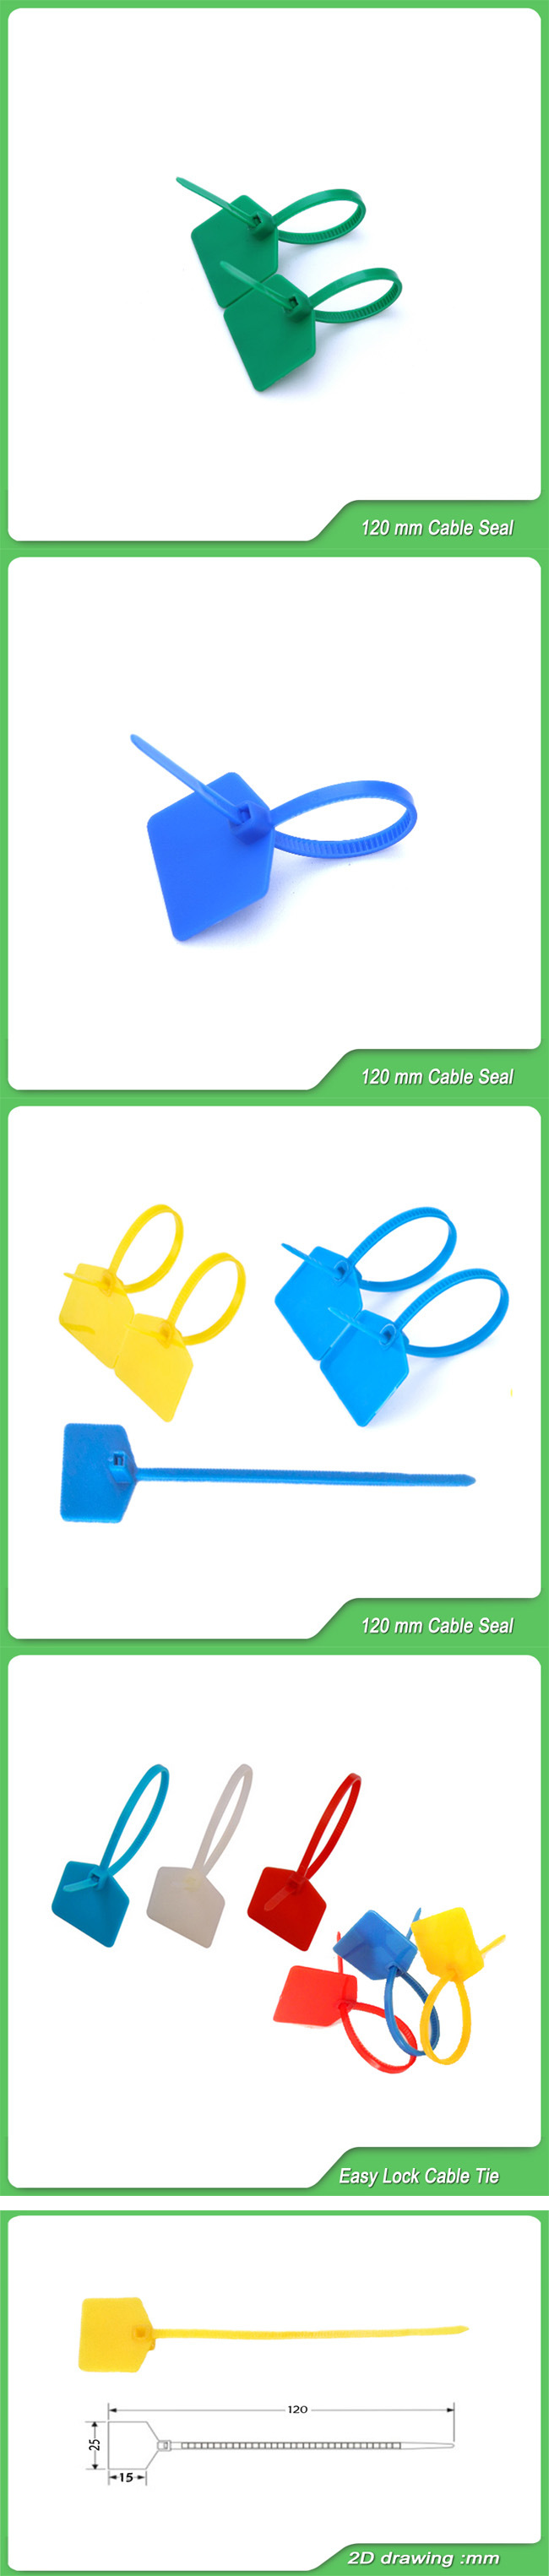 Cargo Seals, Jy 120, High Security Seal, Plastic Seal